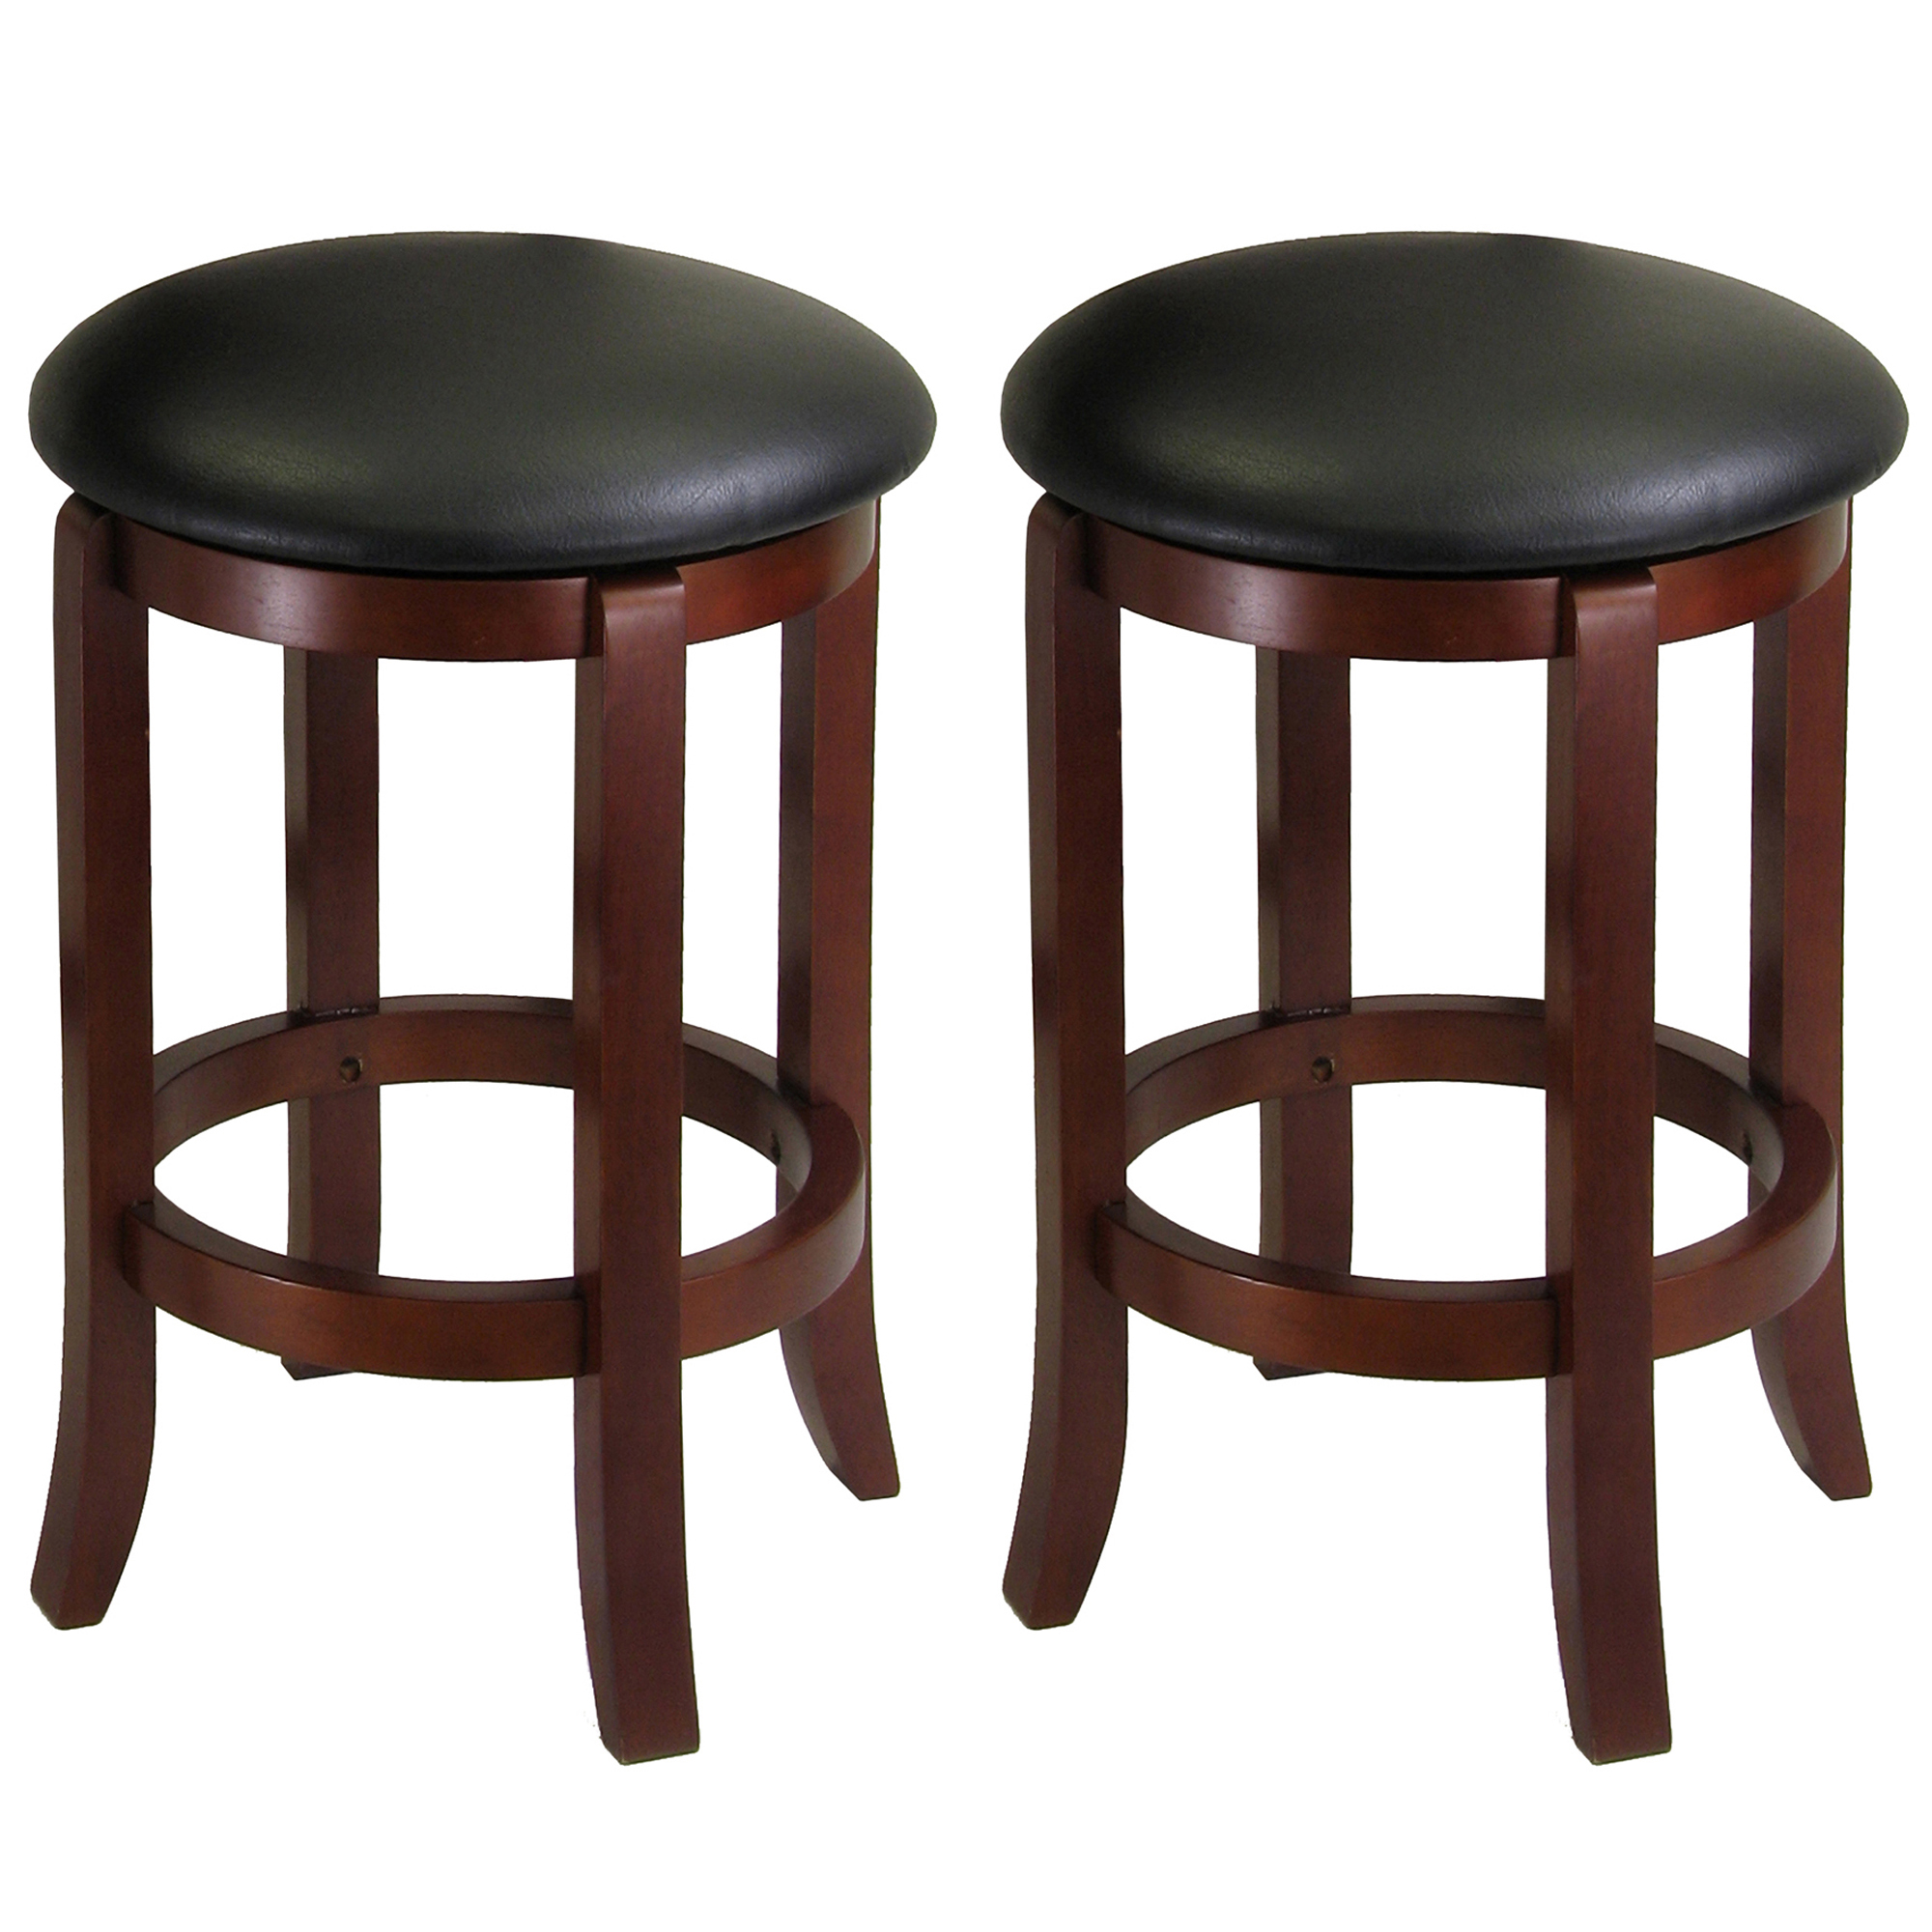 "Winsome Wood Walcott 24"" Faux Leather Swivel Seat Counter Stool, Set of 2, Walnut"